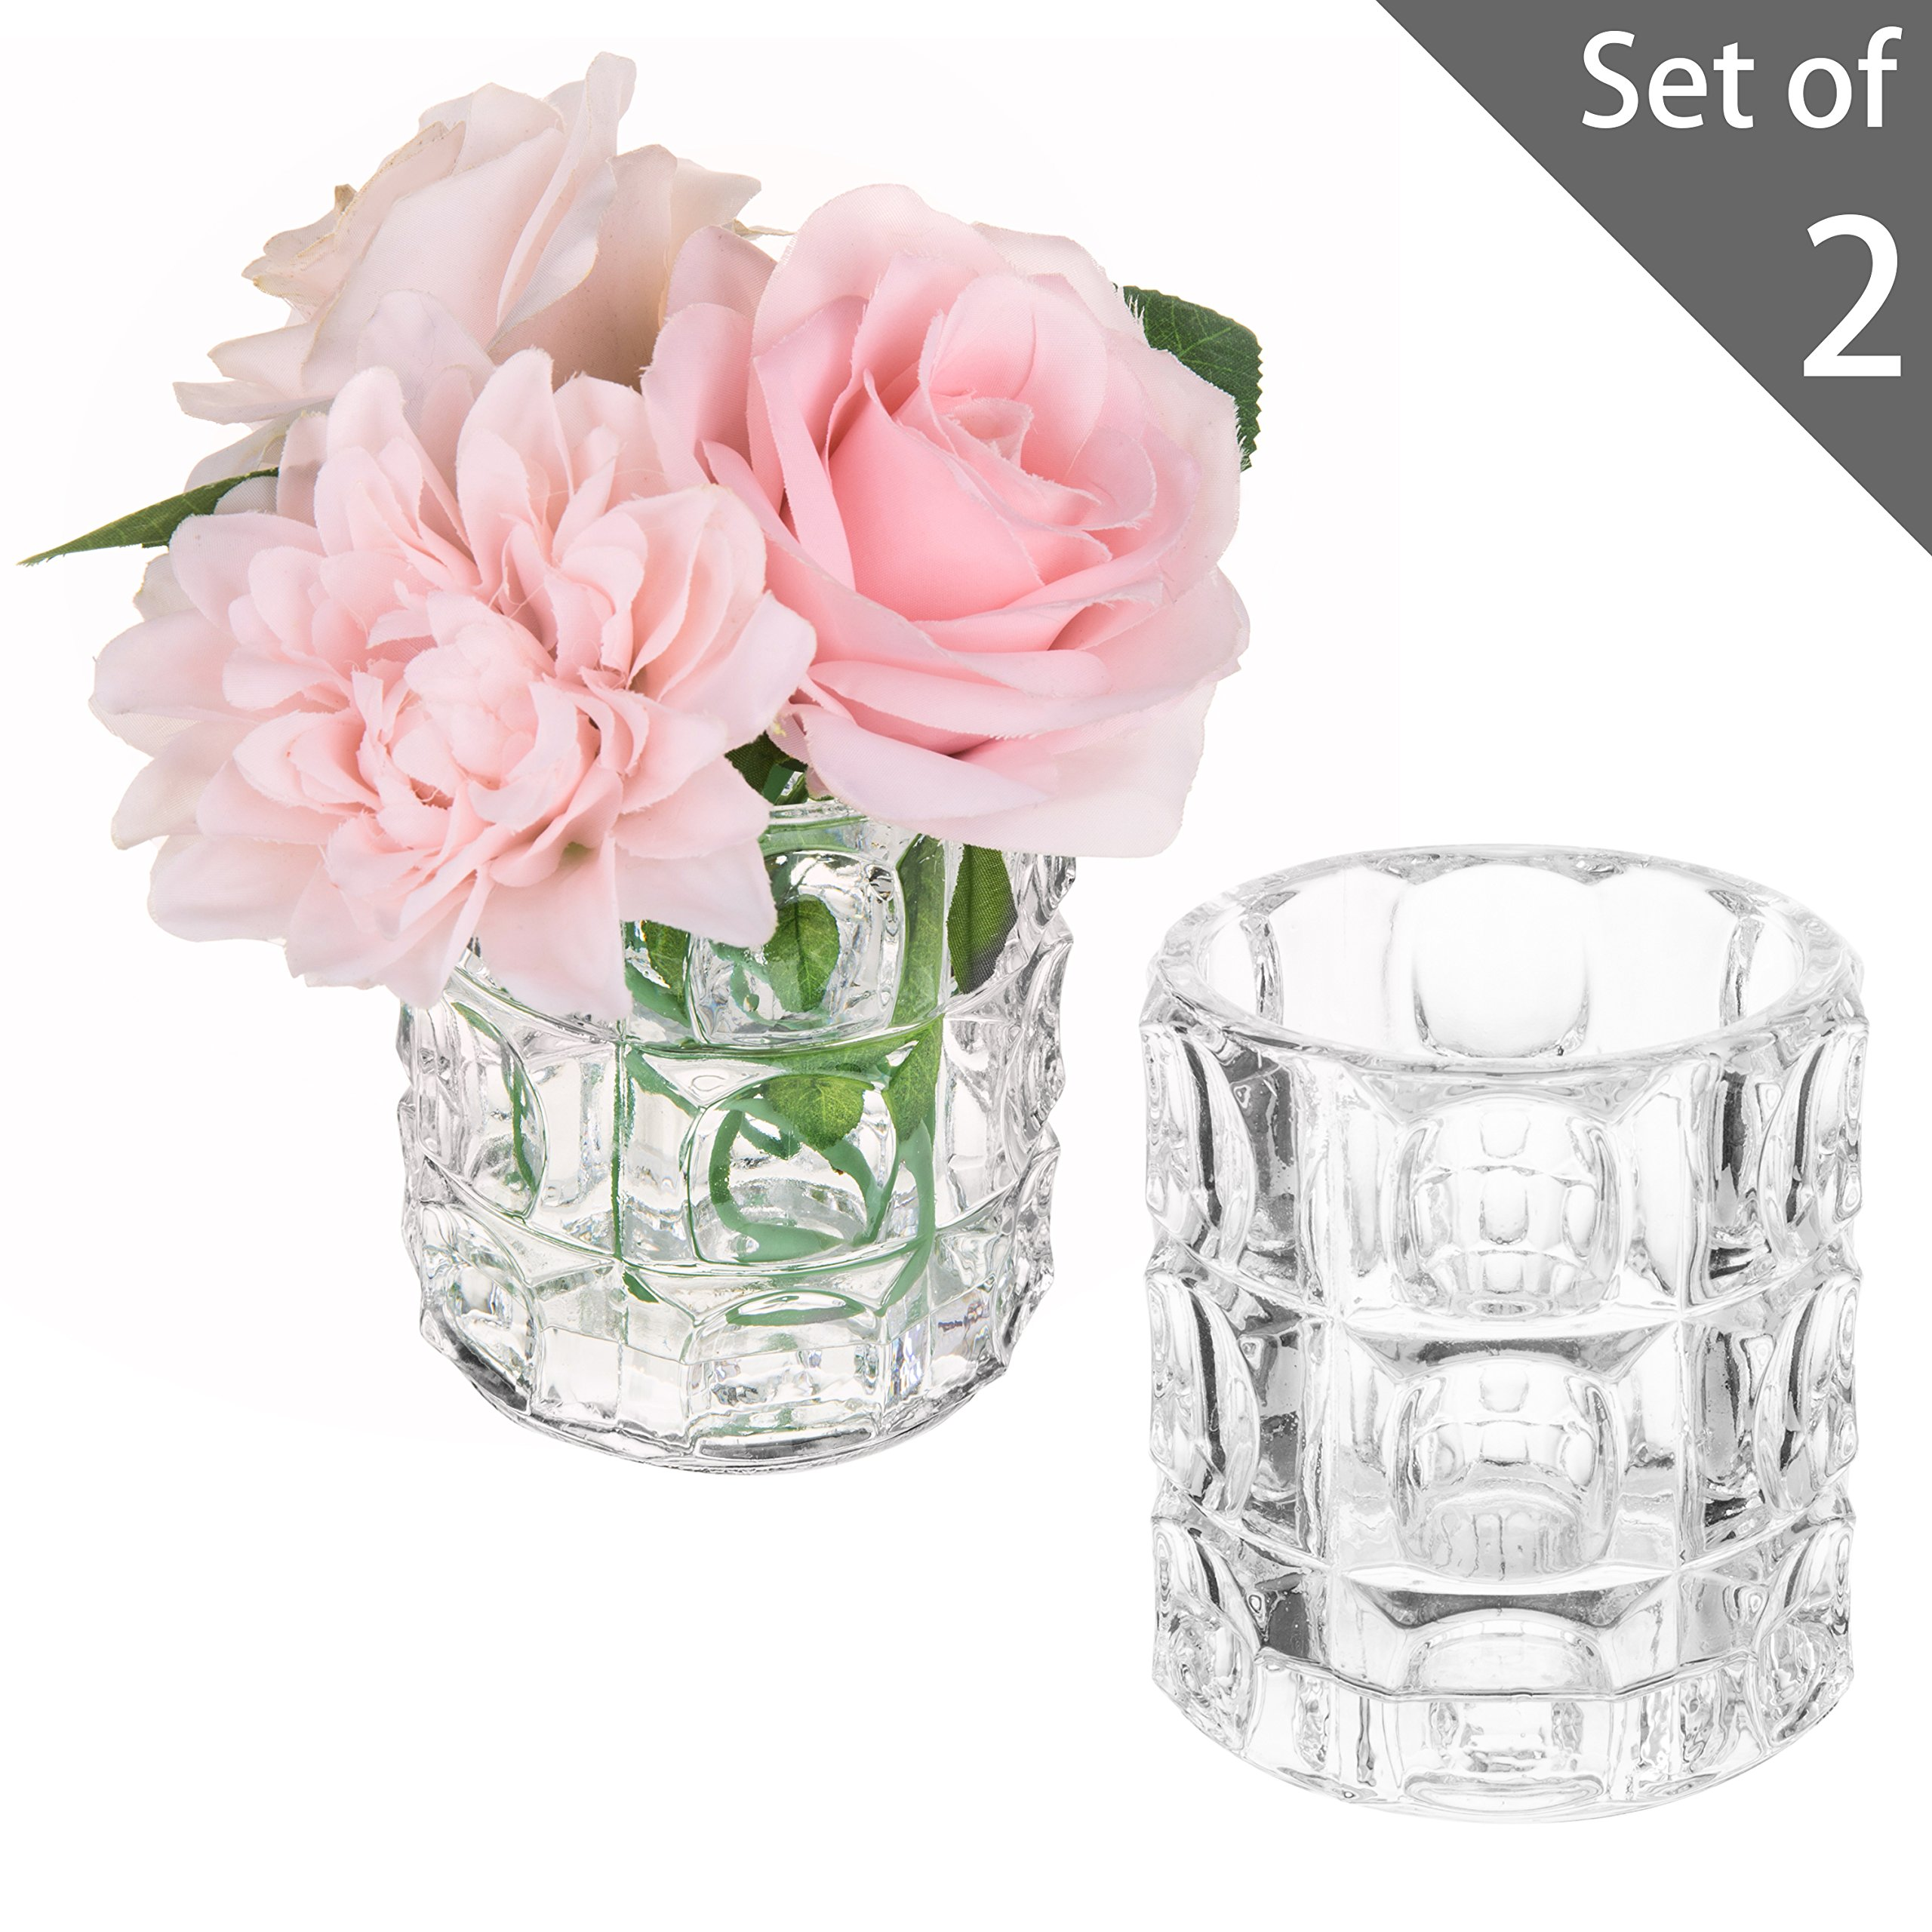 MyGift 4-inch Clear Textured Bubble Glass Vases, Set of 2